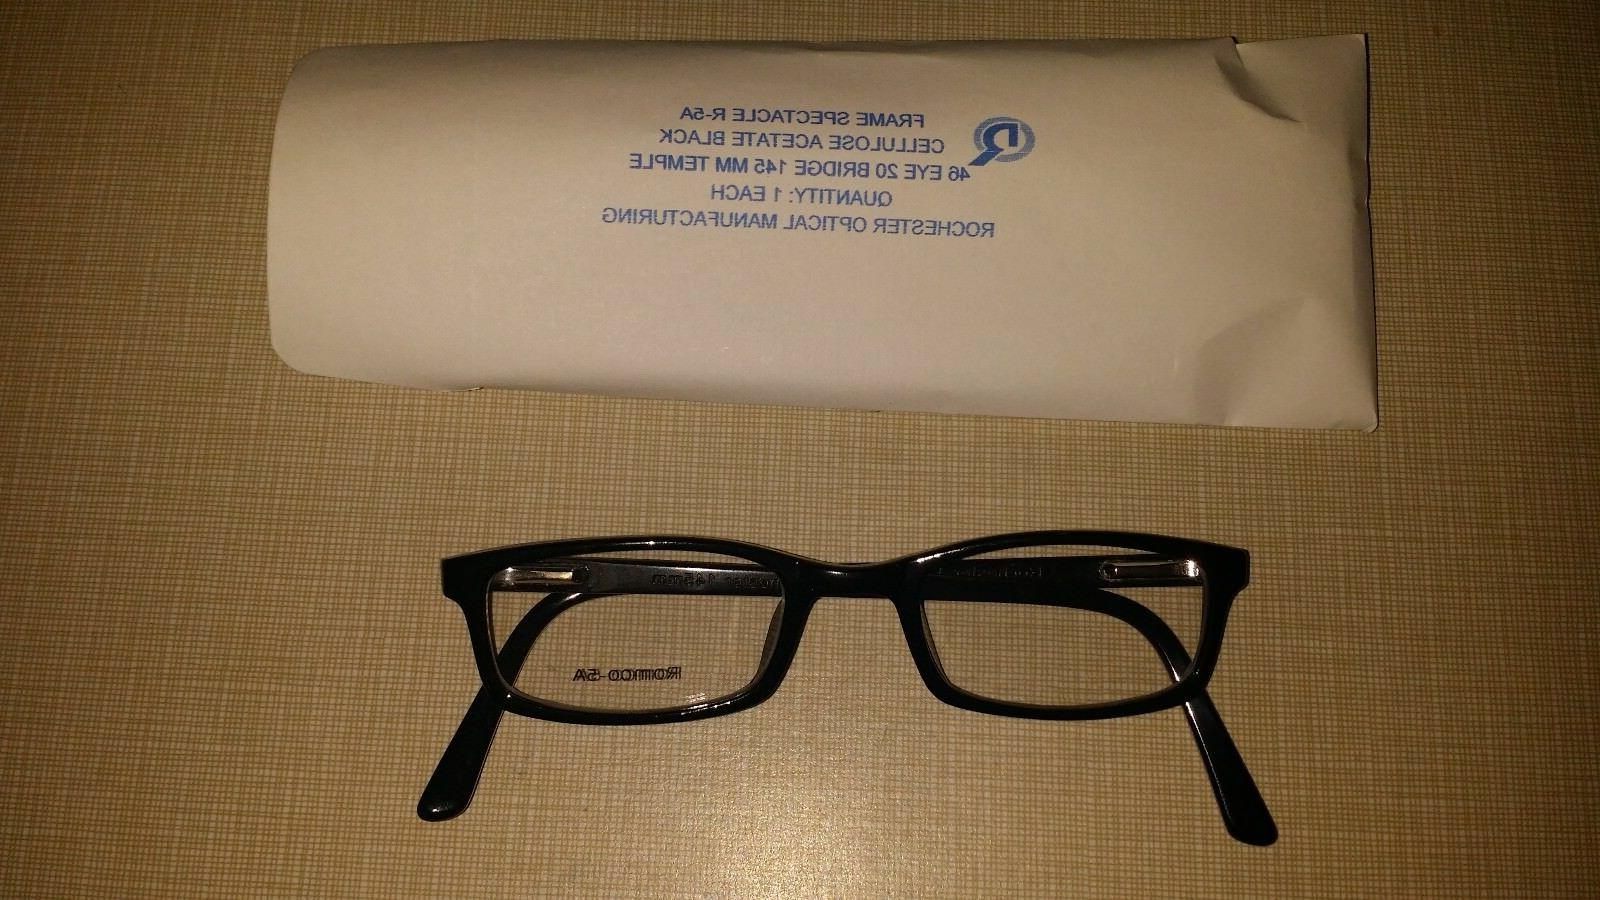 ROCHESTER OPTICAL R-5A FRAME SPECTACLE EYE GLASSES SIZE 46-2